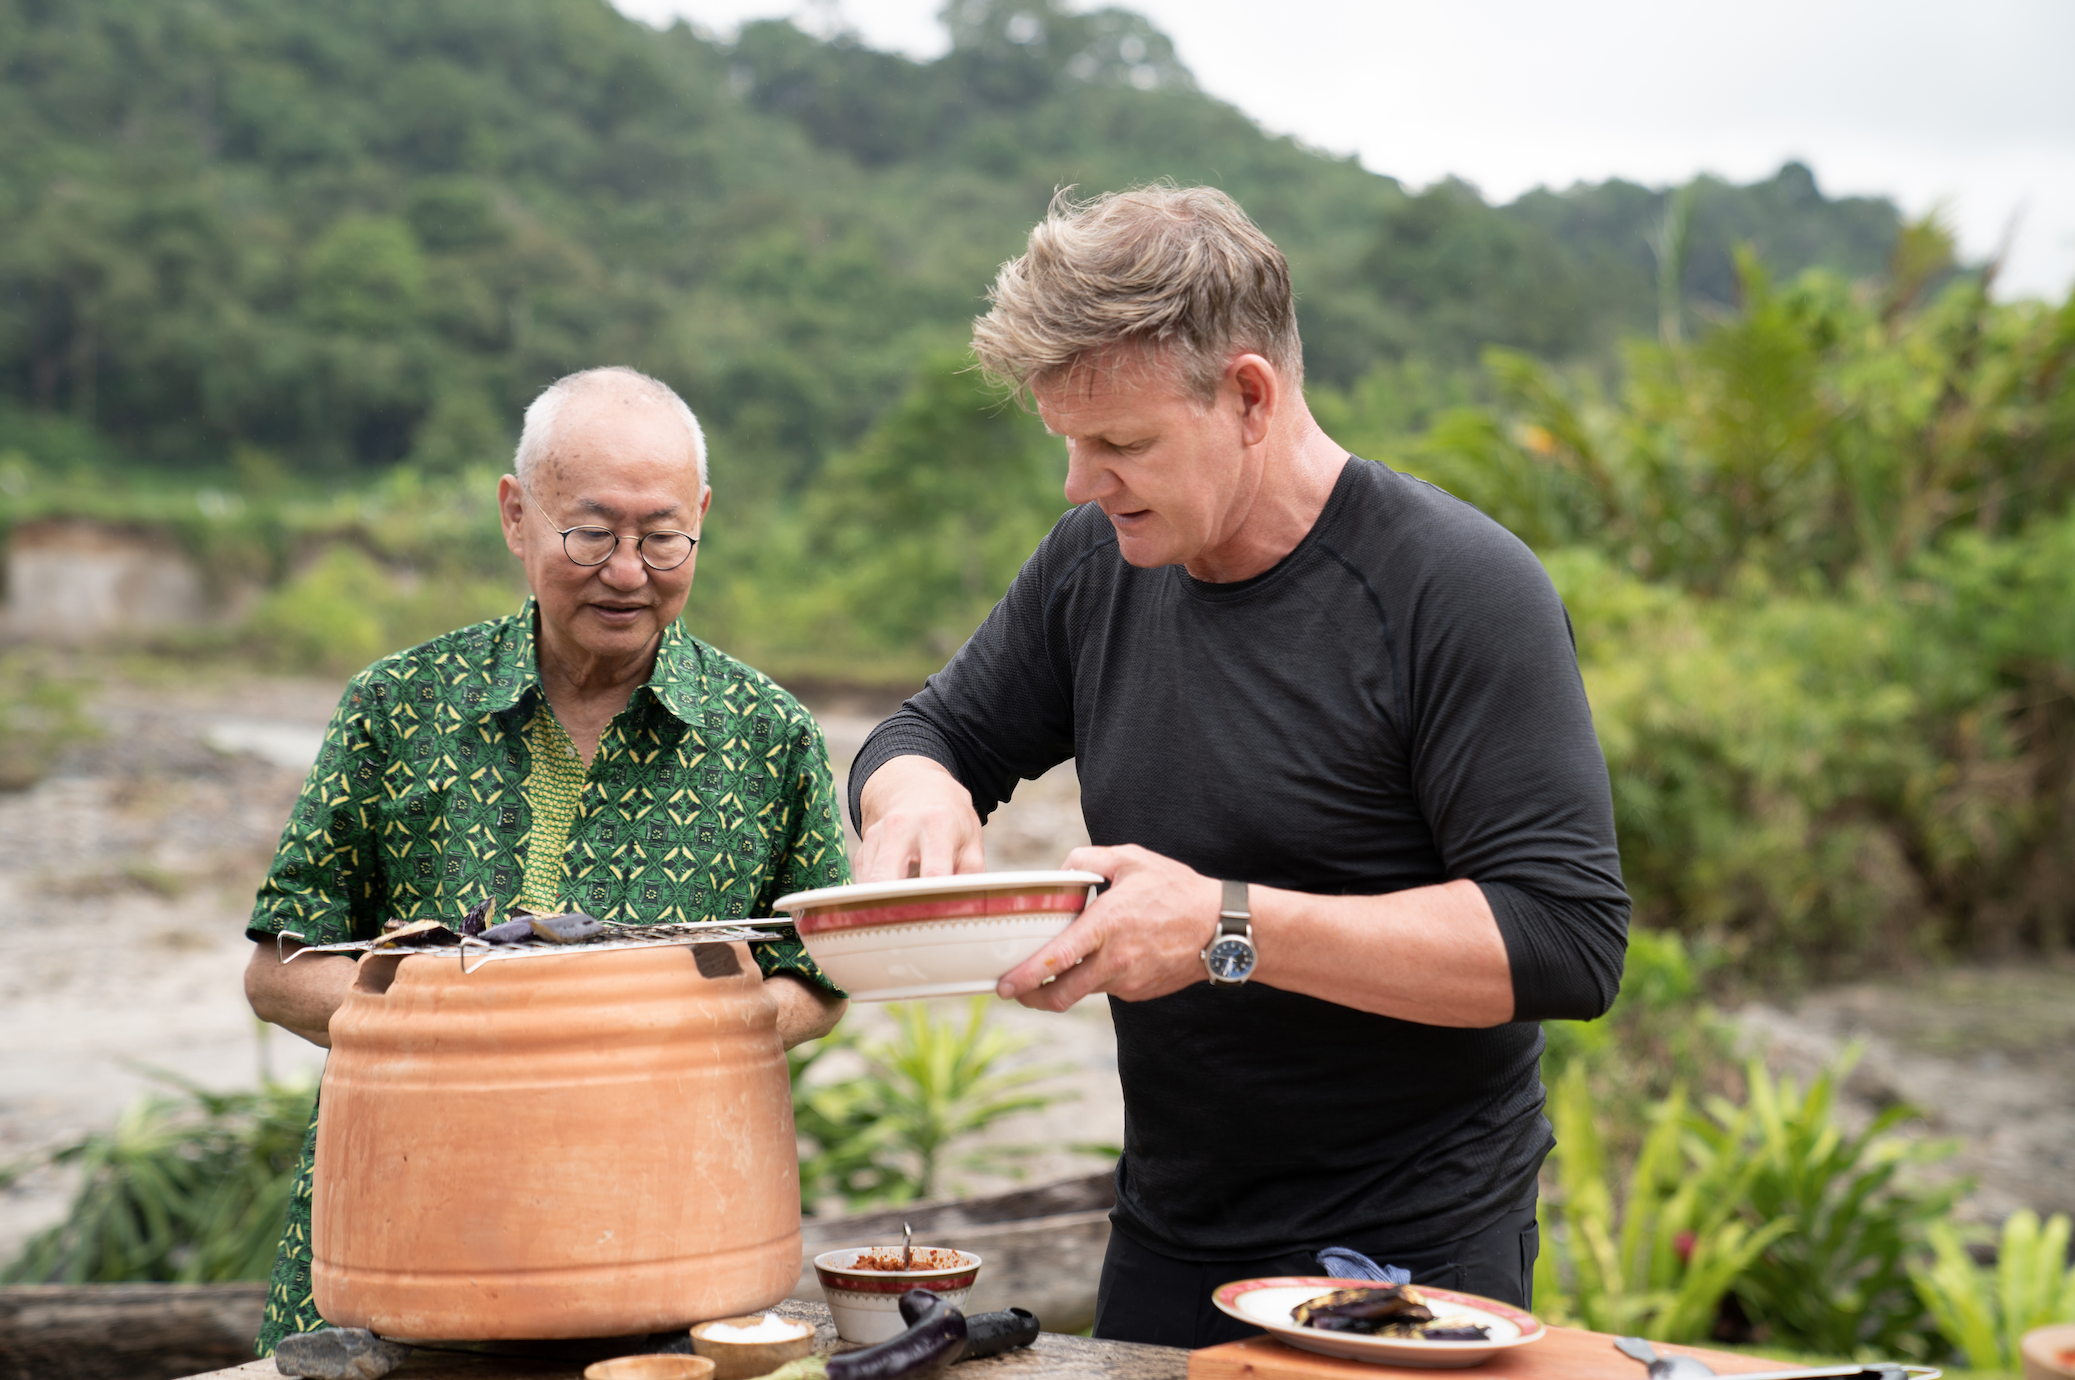 With Wongso looking over his shoulder, the pressure is on for Ramsay to get his rendang right. — Picture courtesy of National Geographic